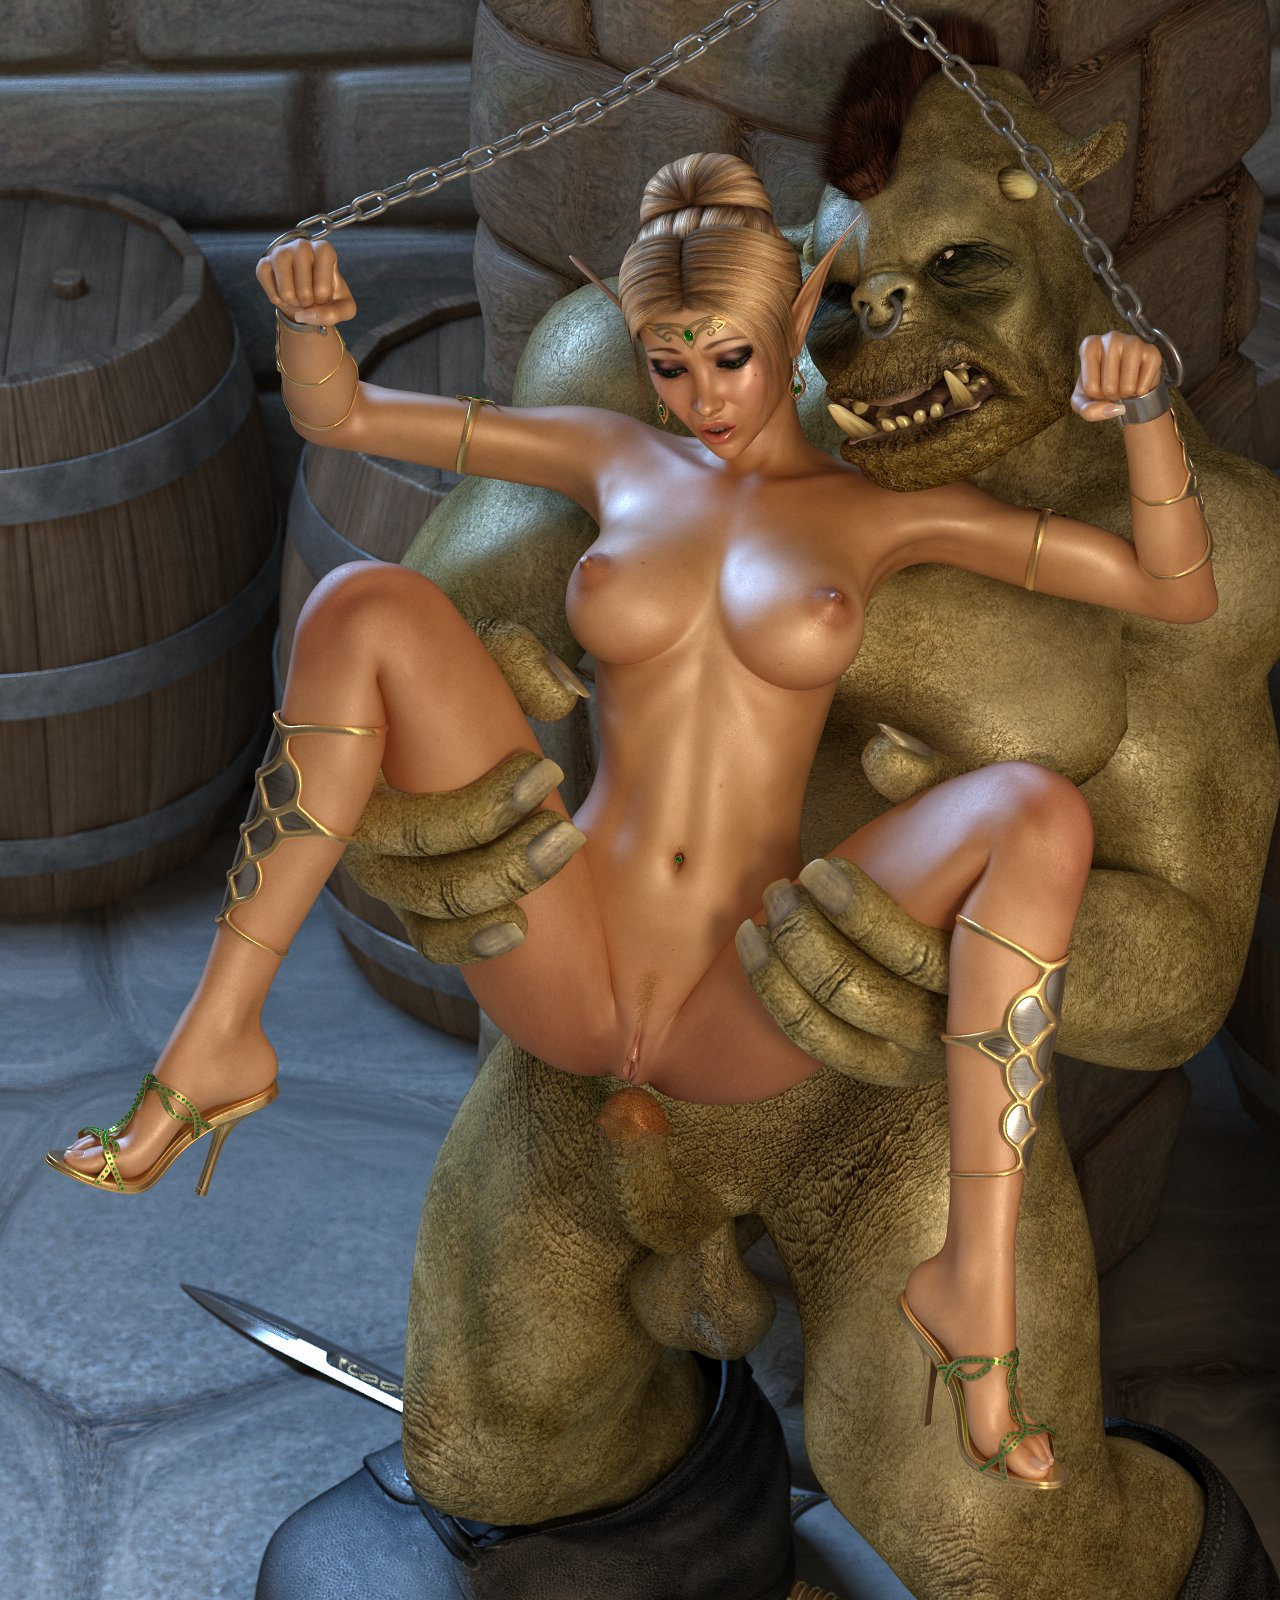 Elf with monster porn anim sex image